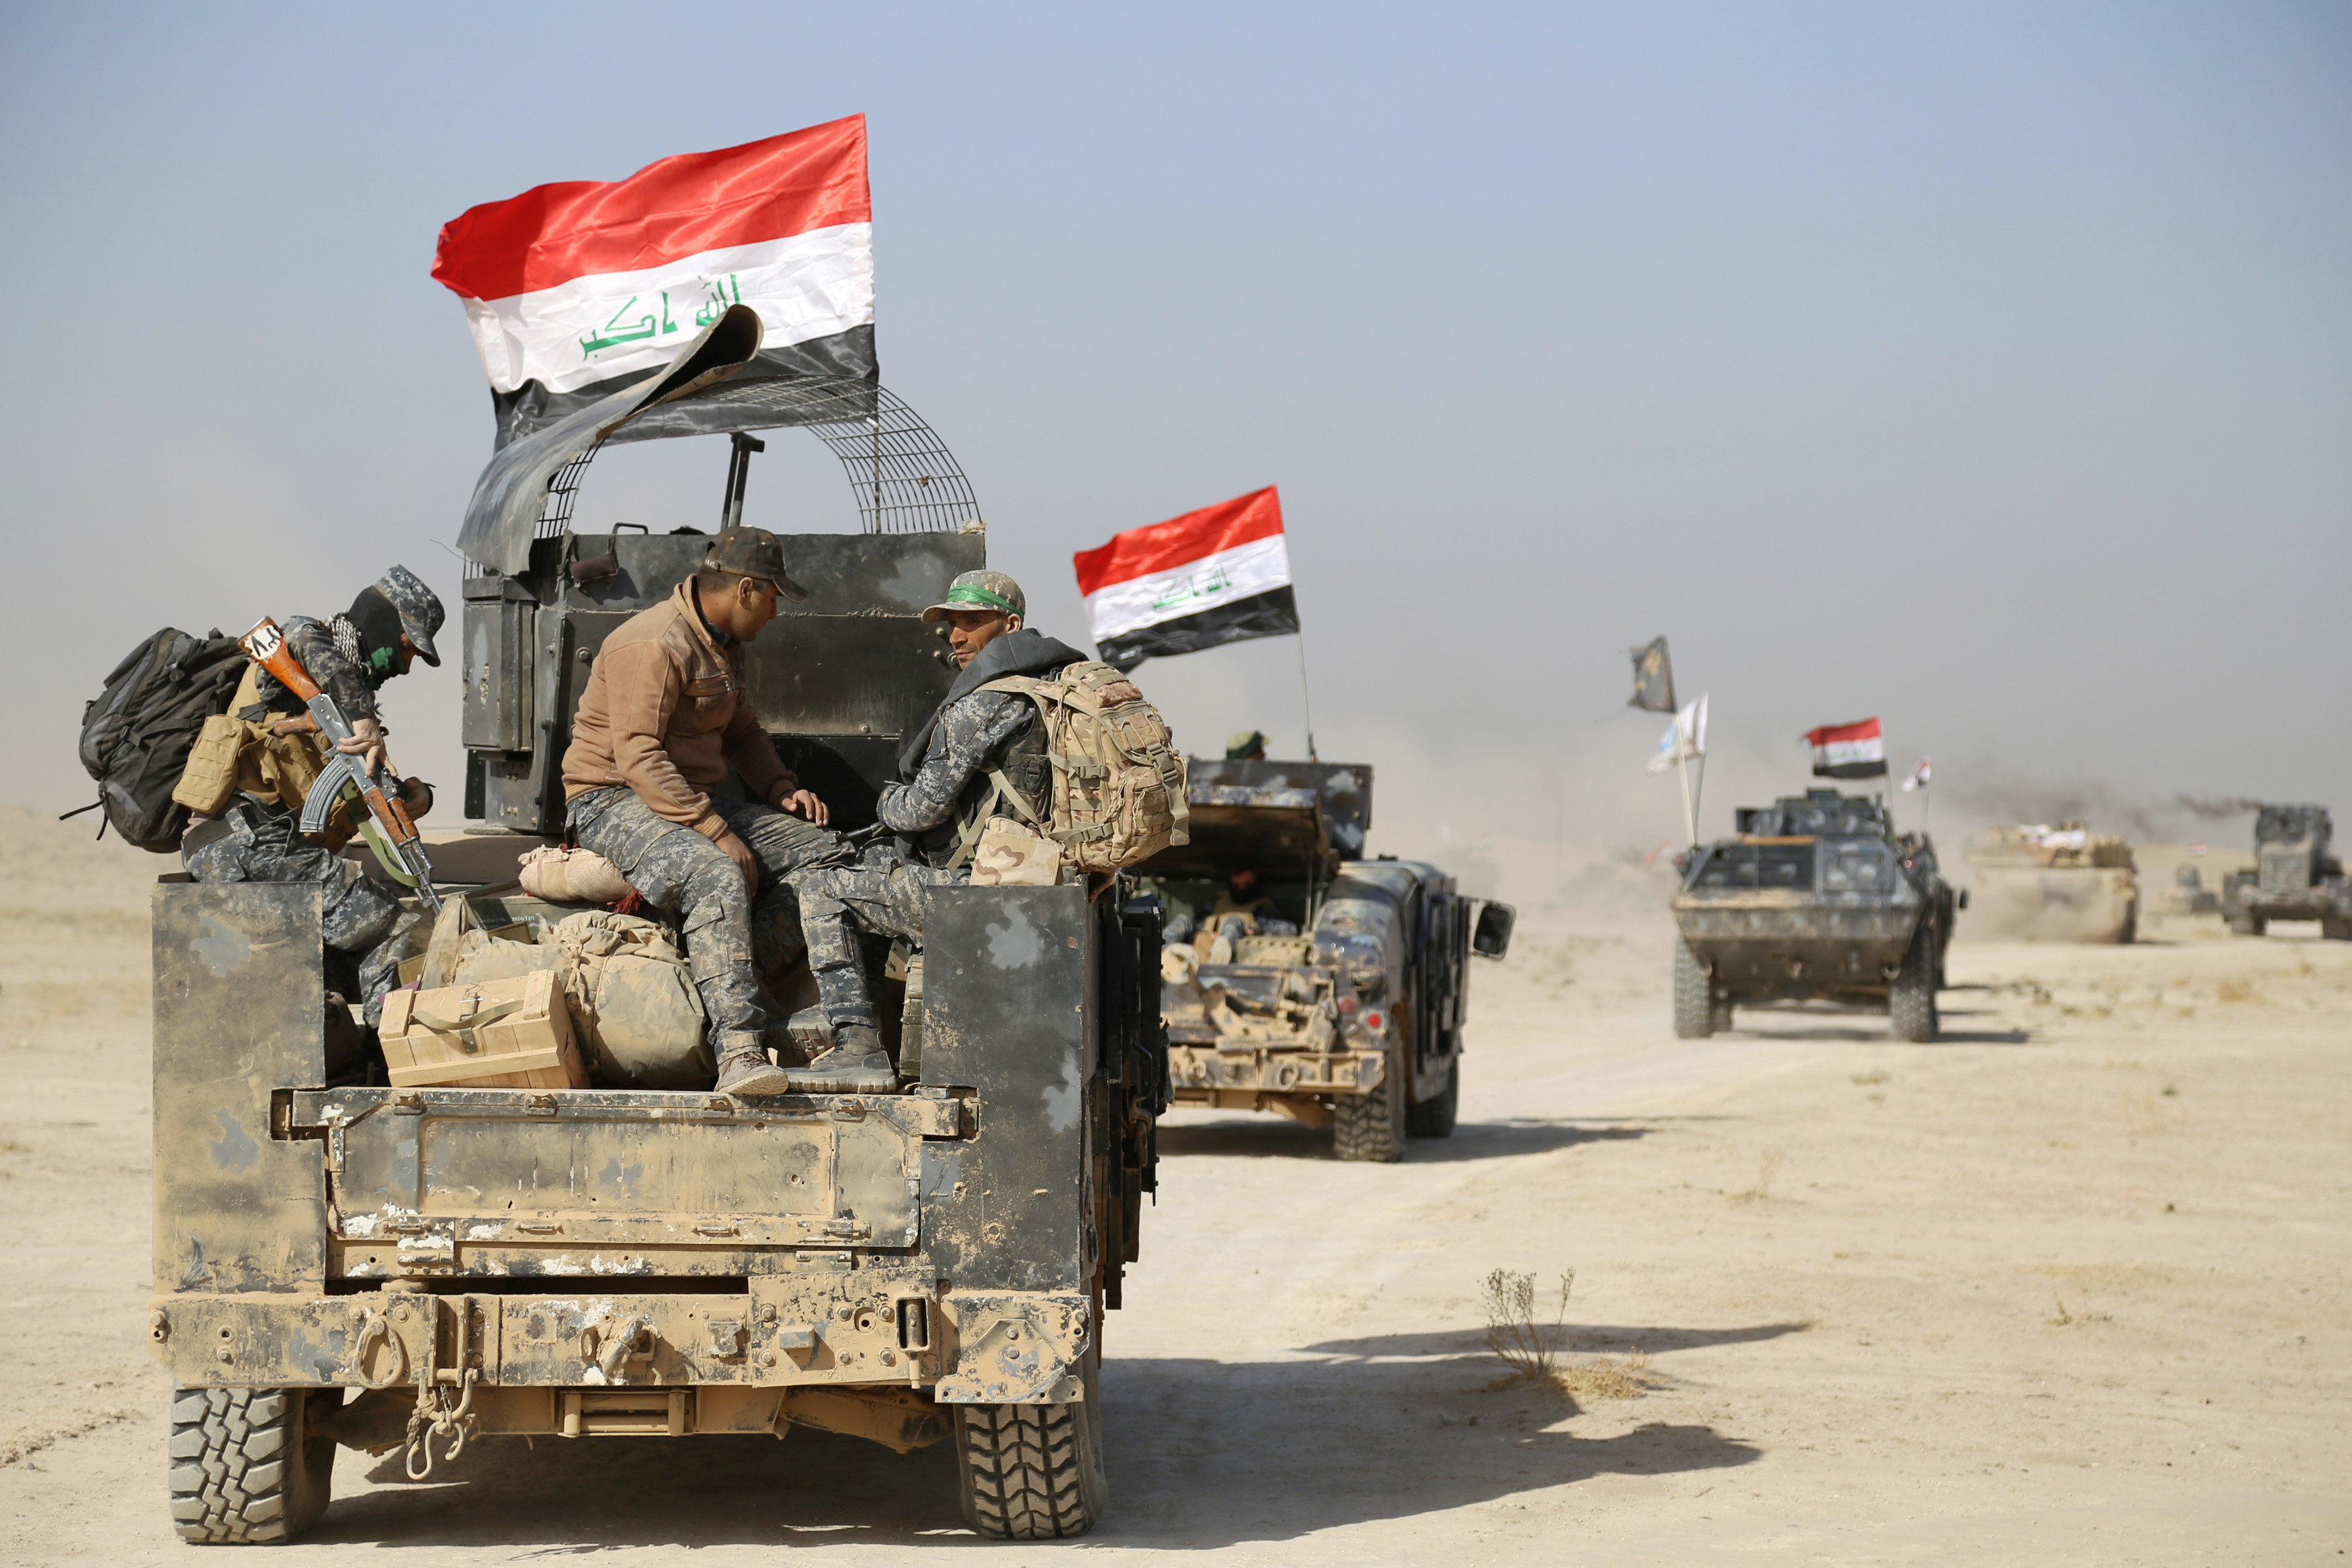 Iraqi security forces advance in Qayara, south of Mosul, to attack Islamic State militants in Mosul